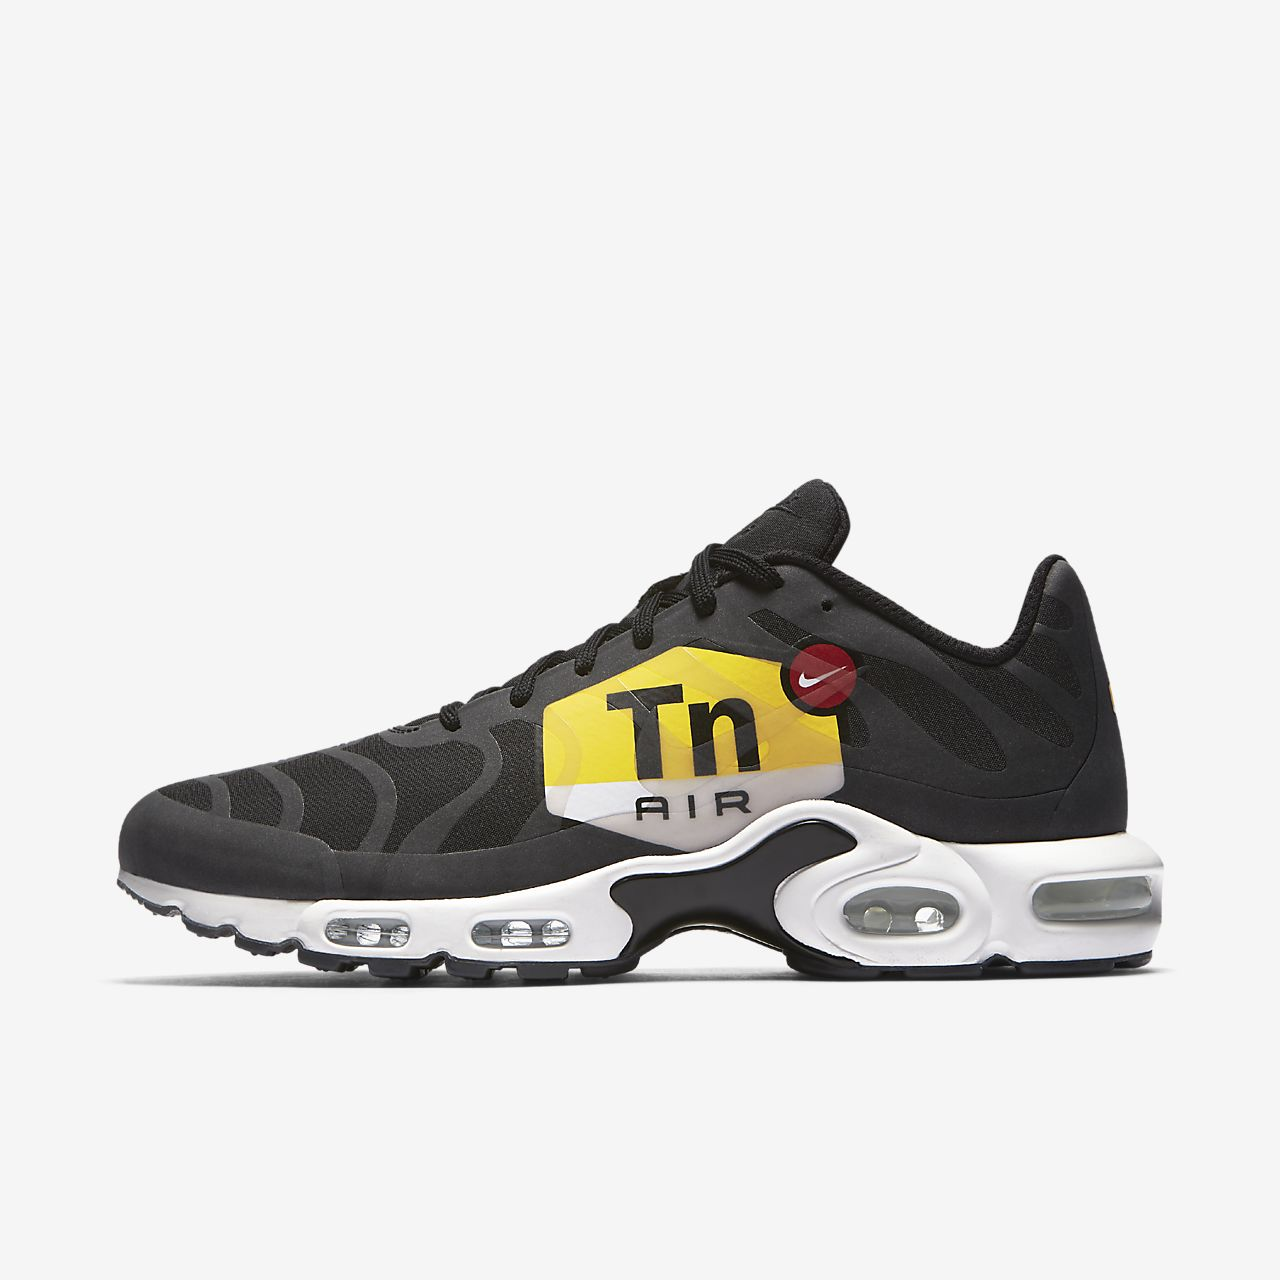 Nike Air Max Plus NS GPX Men's Shoe